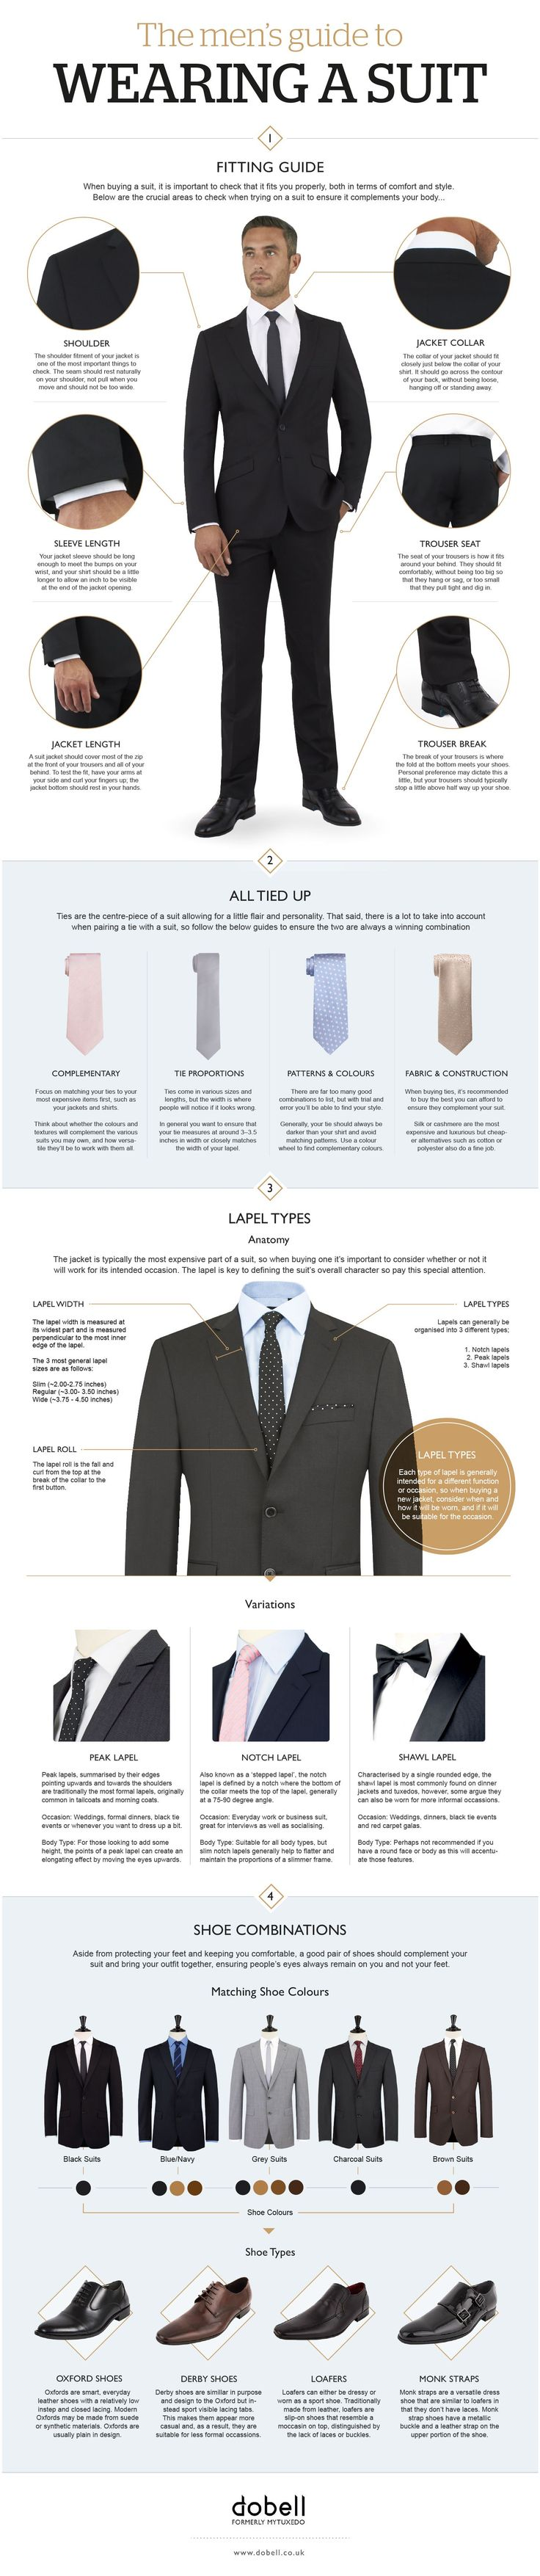 The Men's Guide to Wearing a Suit